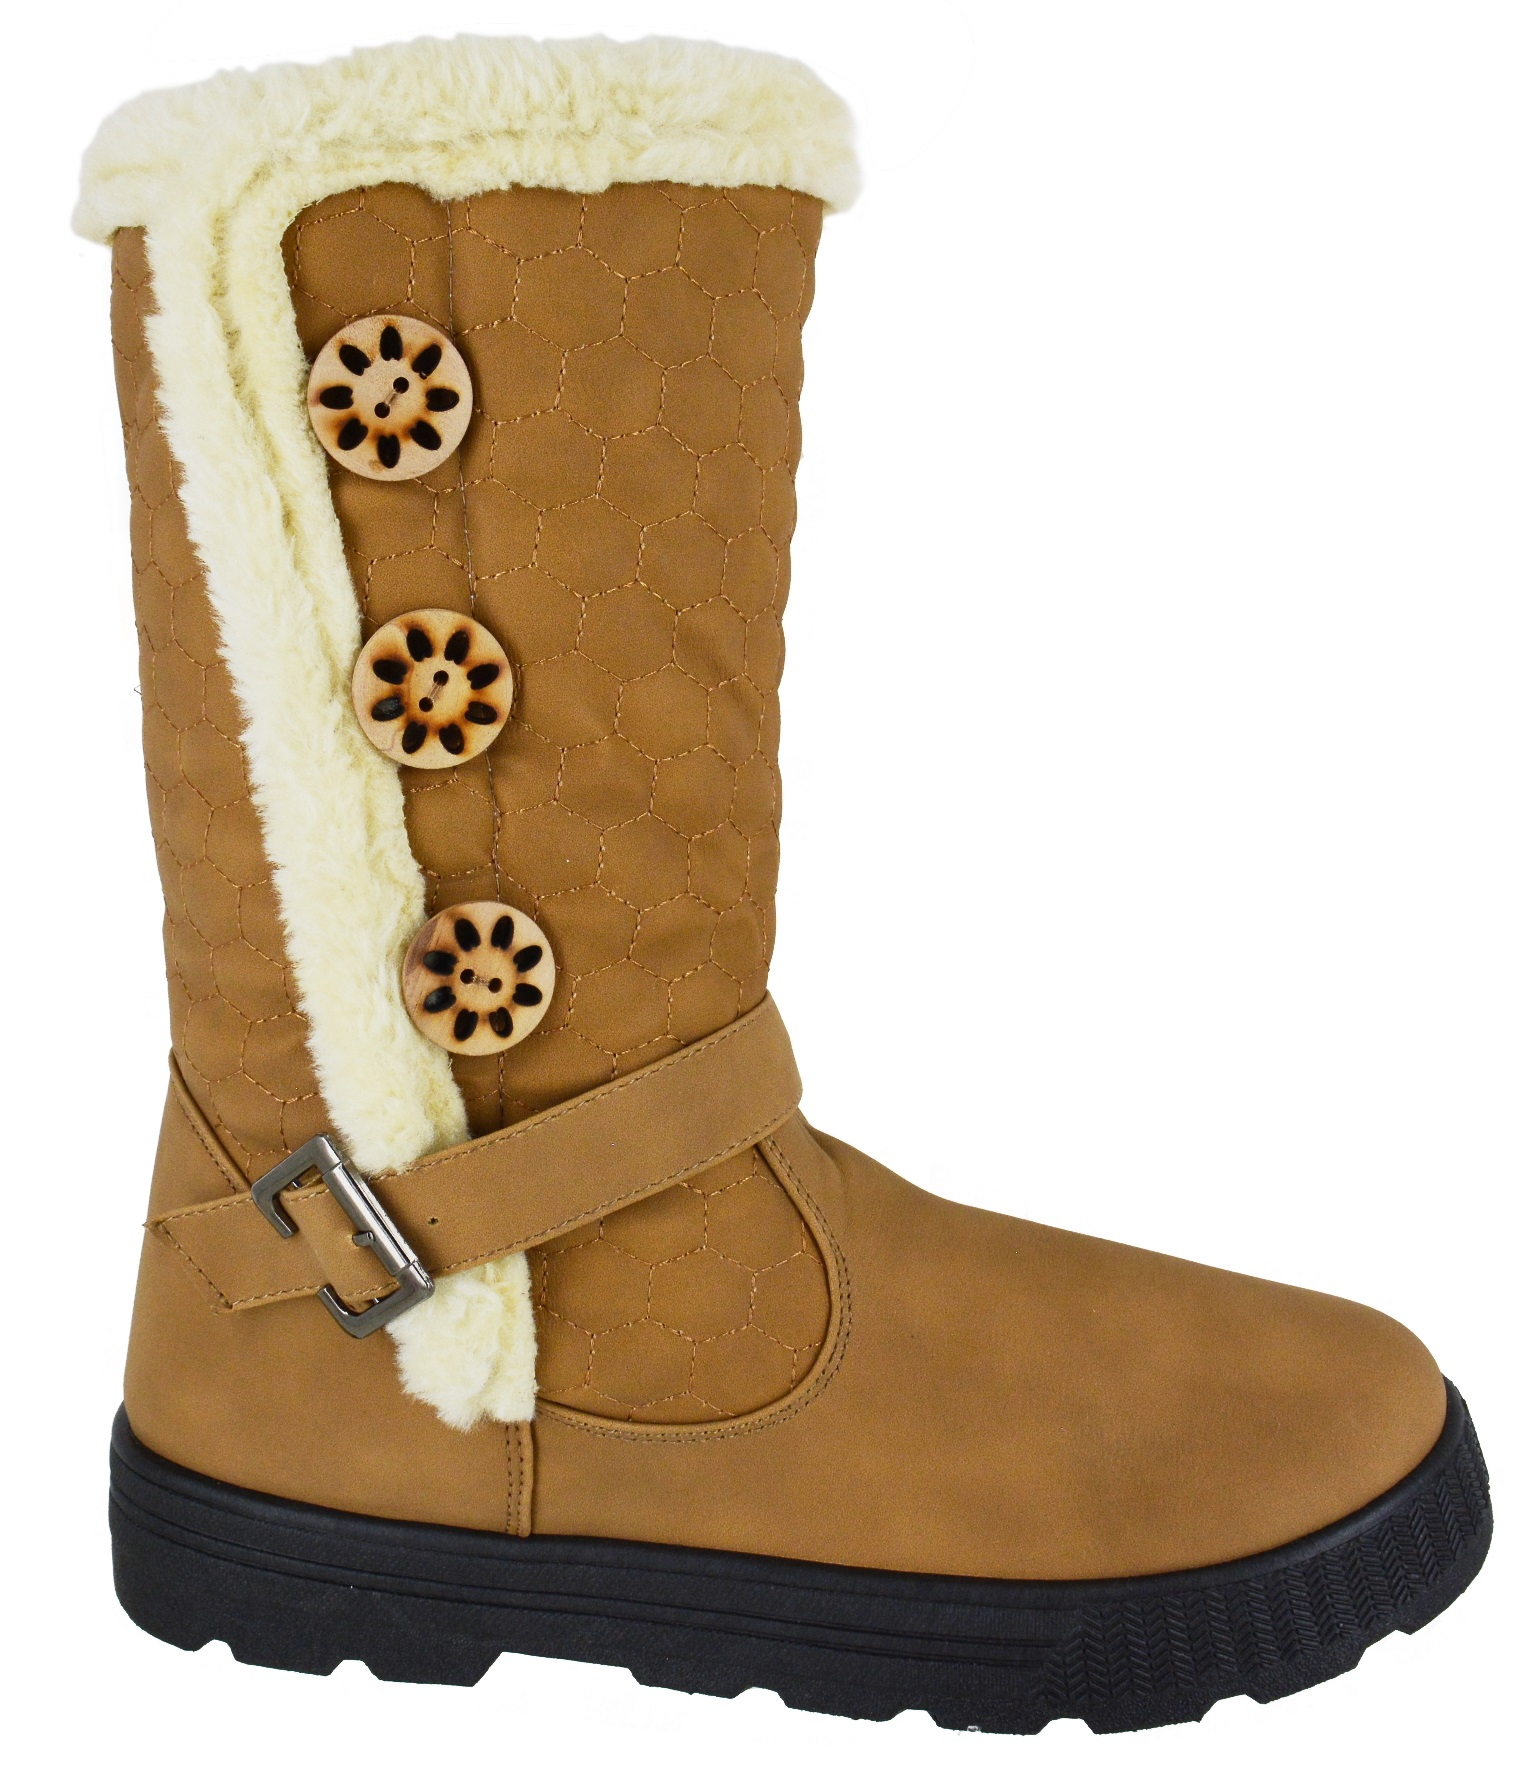 LADIES-GIRLS-FLAT-KNEE-HIGH-BUCKLED-FUR-LINED-WINTER-WOMENS-WARM-SNOW-BOOTS-SZ